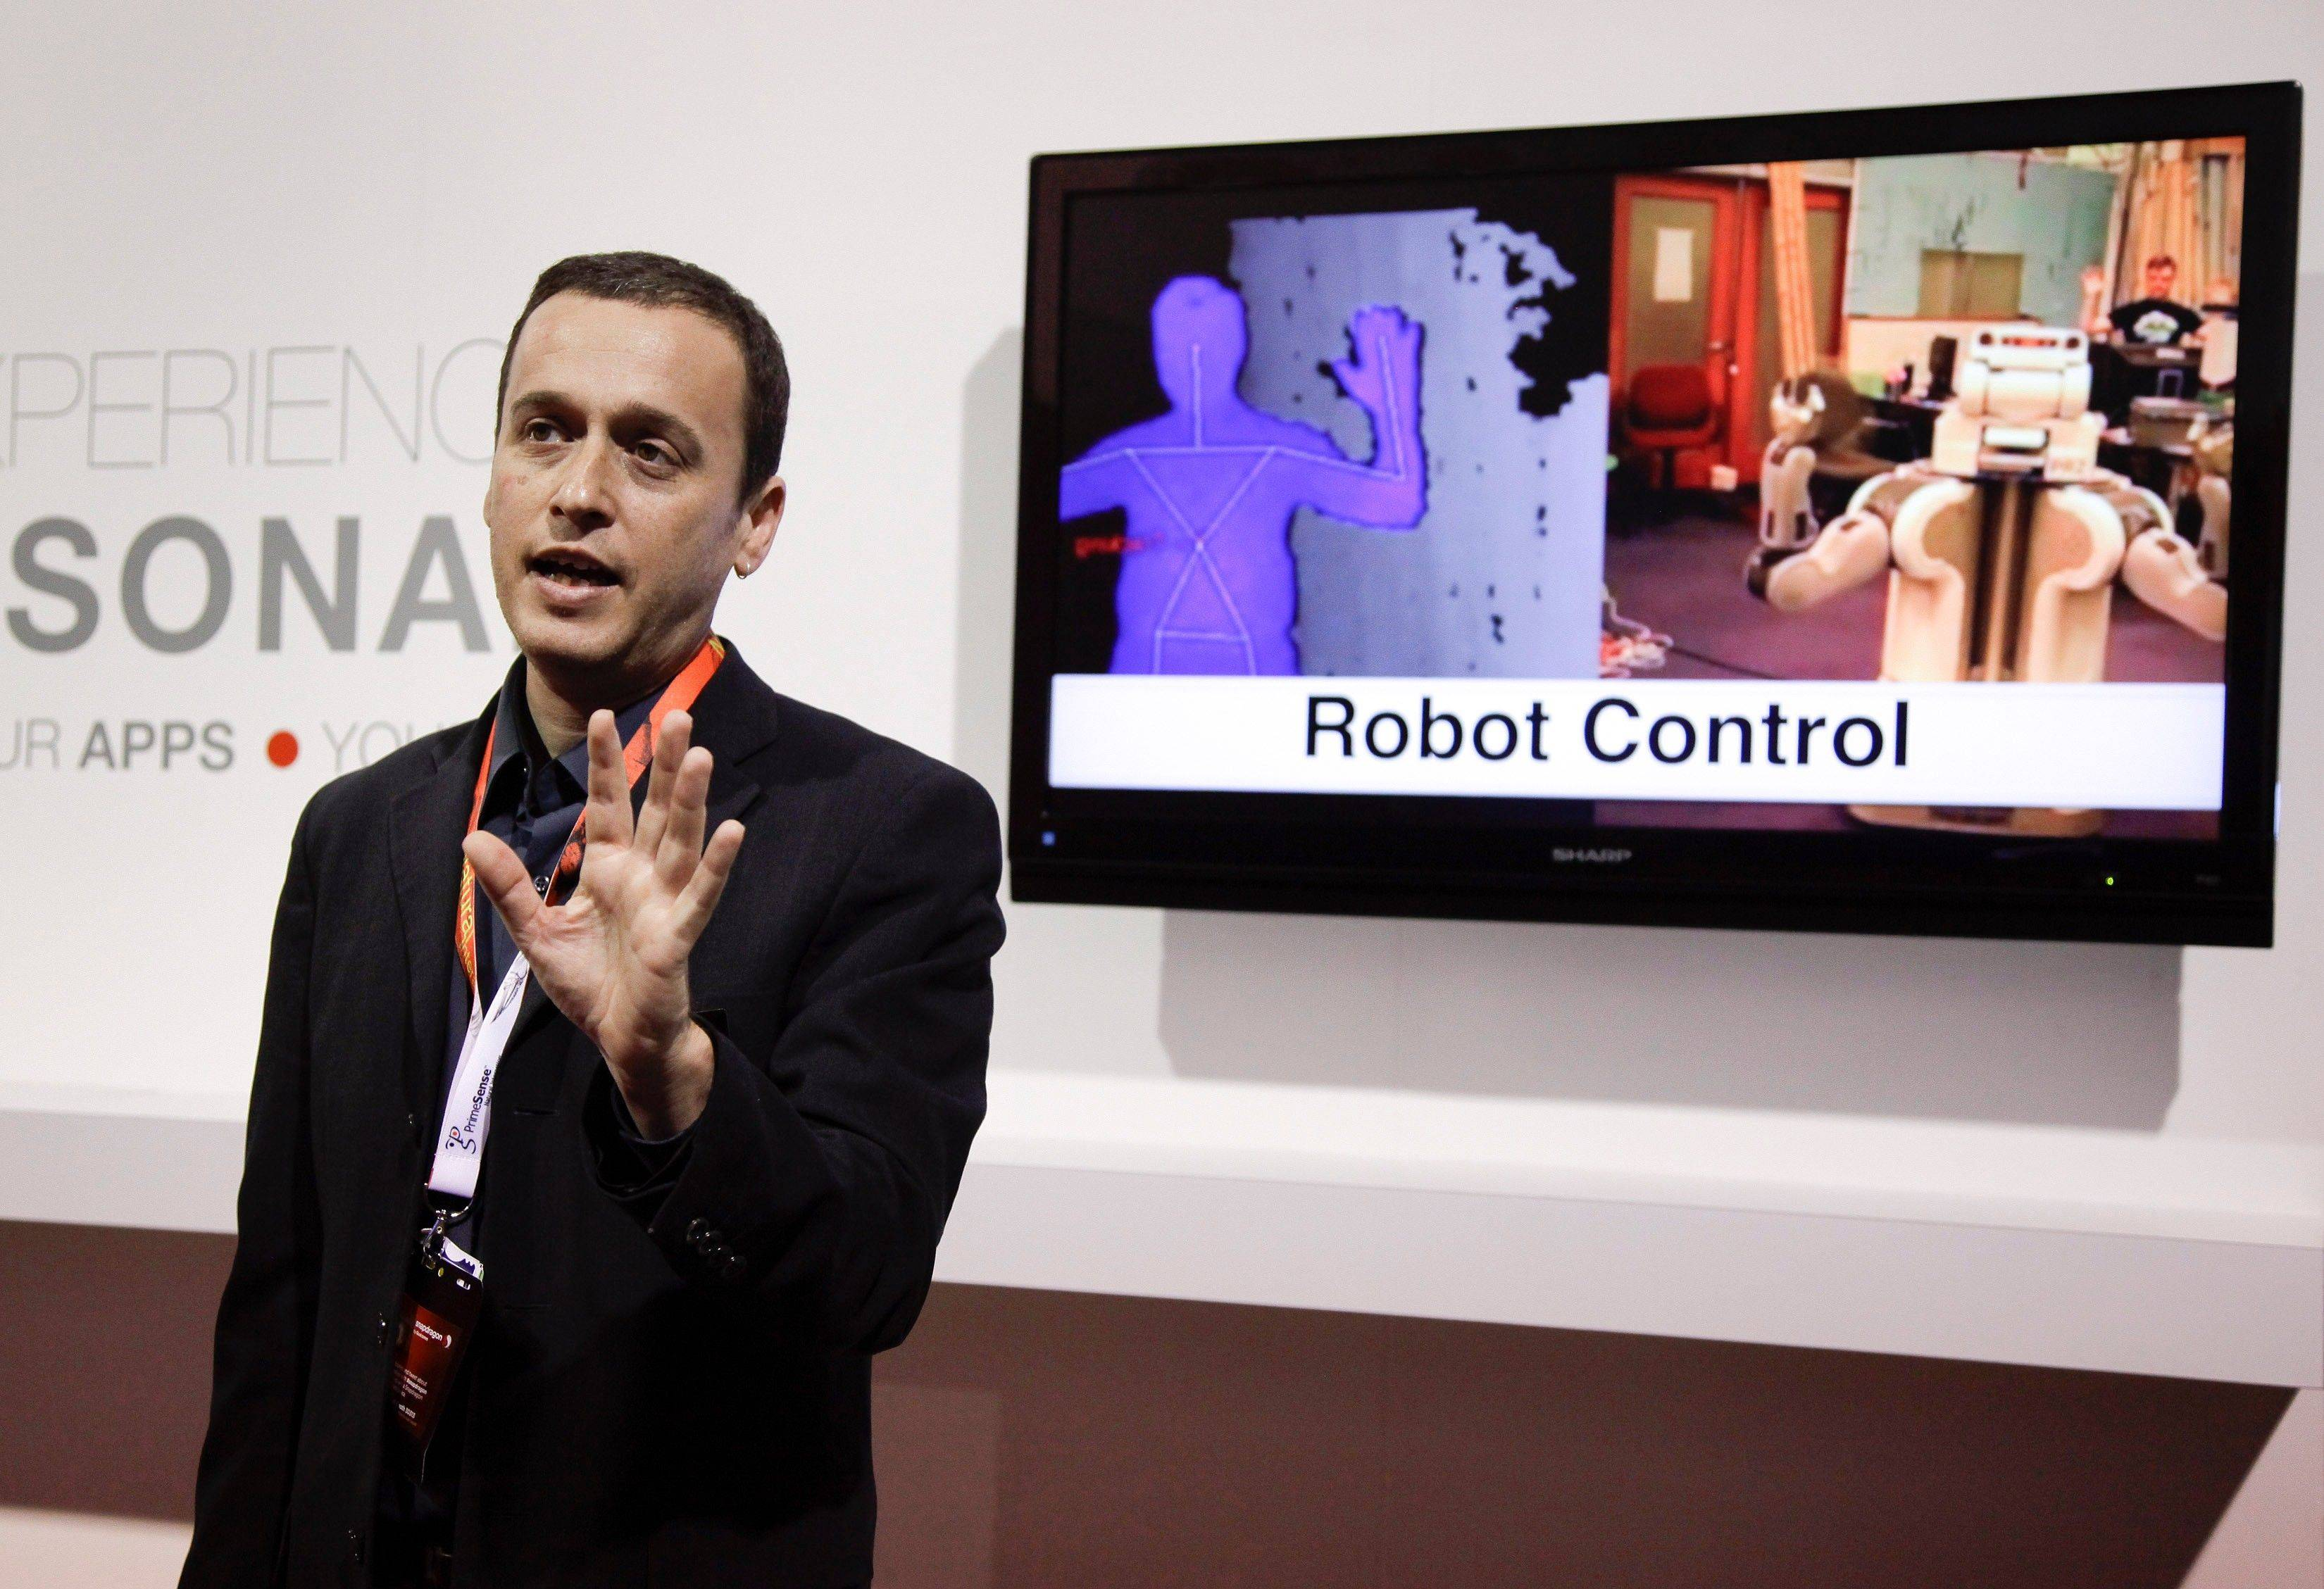 PrimeSense employee Adi Berenson demonstrates the use of depth control cameras at the 2012 International Consumer Electronics Show in Las Vegas. The technology allows control of electronic devices with body motion.